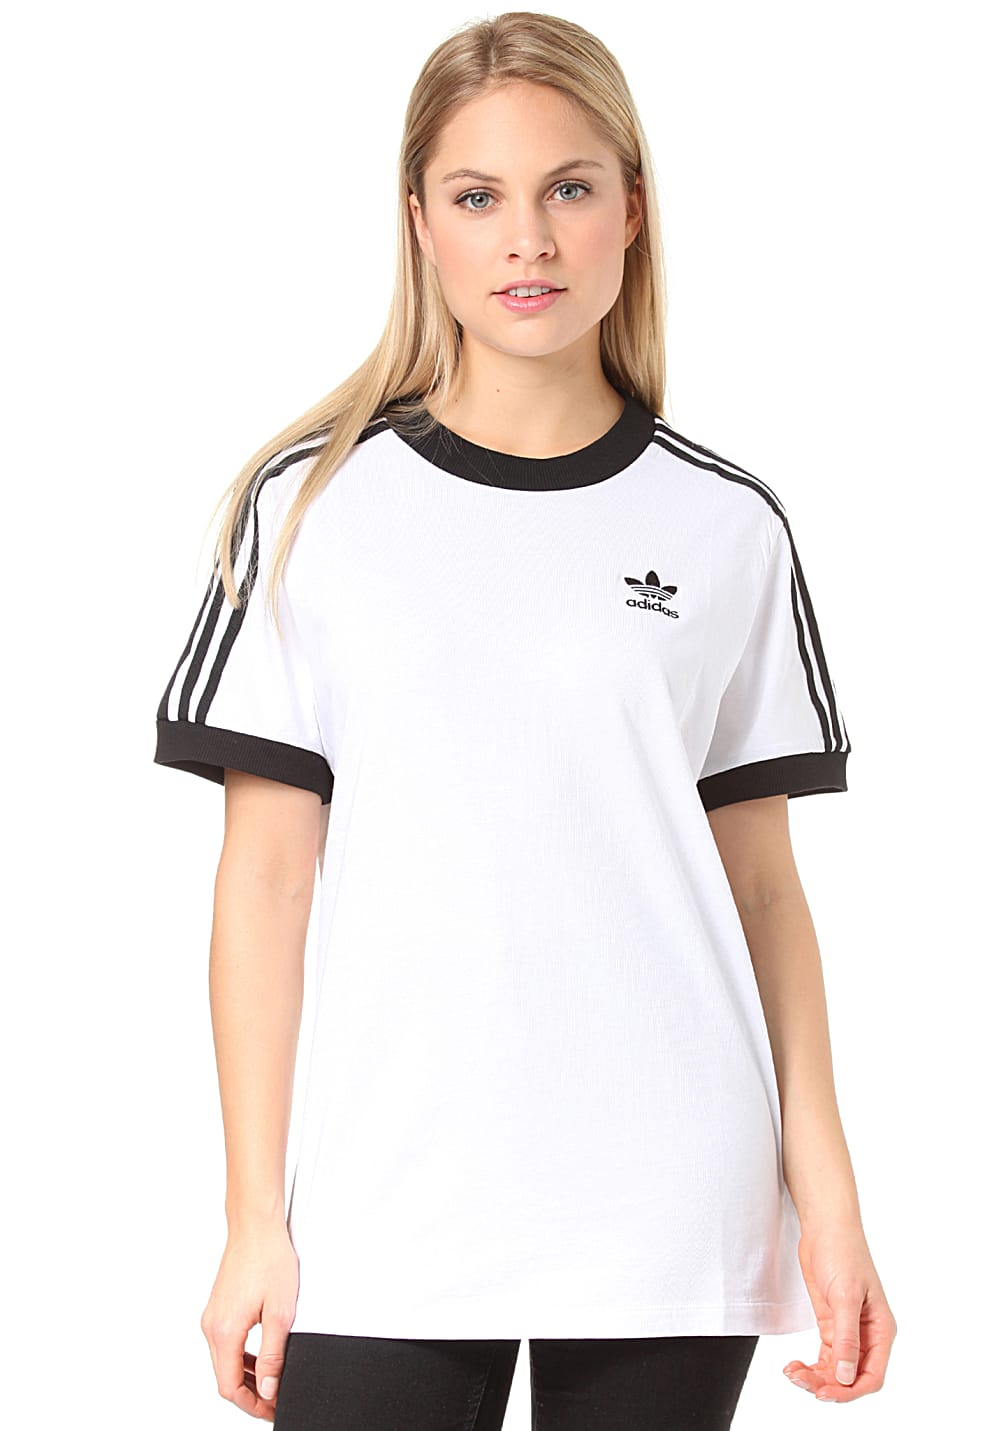 ADIDAS ORIGINALS 3 Stripes T shirt voor Dames Wit